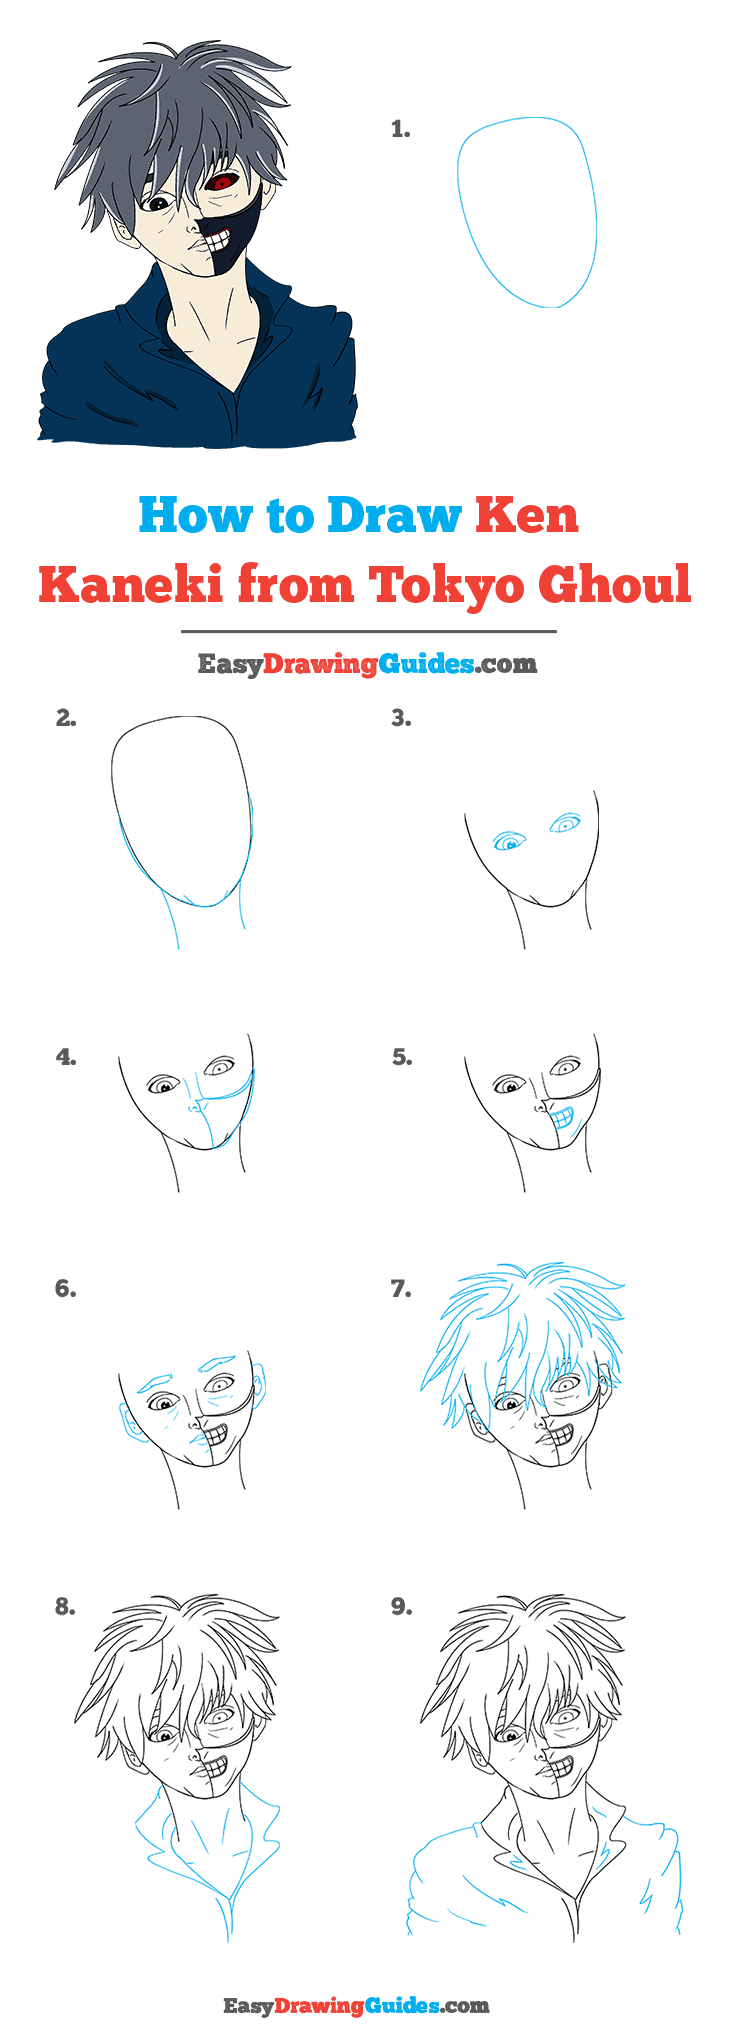 How to Draw Ken Kaneki from Tokyo Ghoul Step by Step Tutorial Image